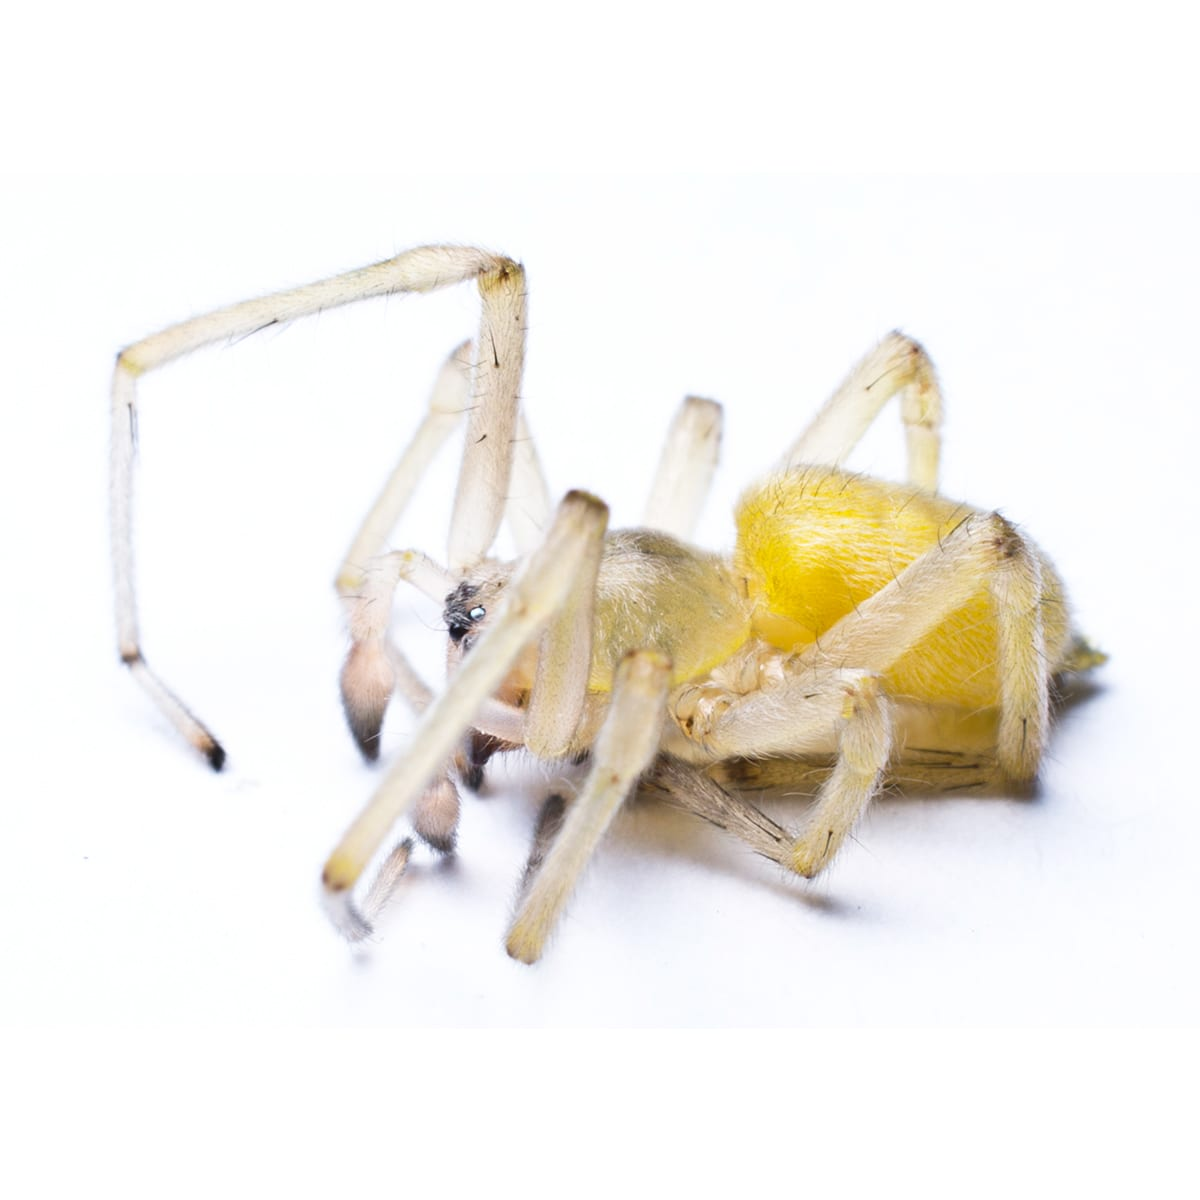 A Yellow Sac Spider